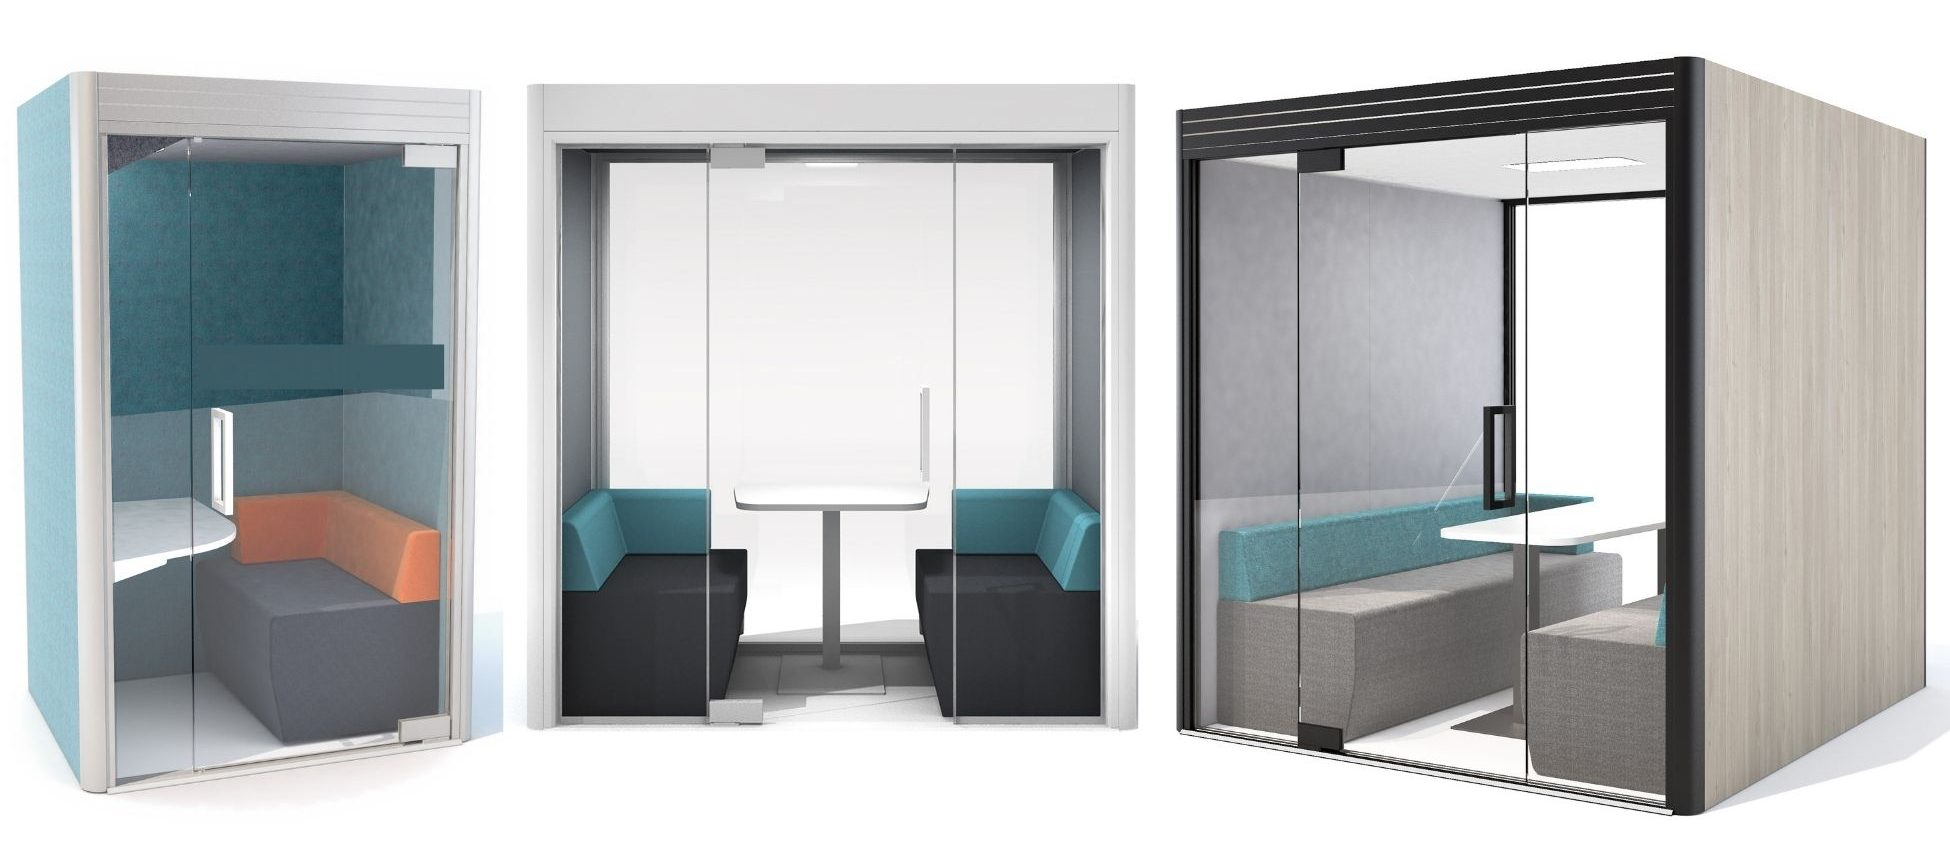 Kube pods and booth